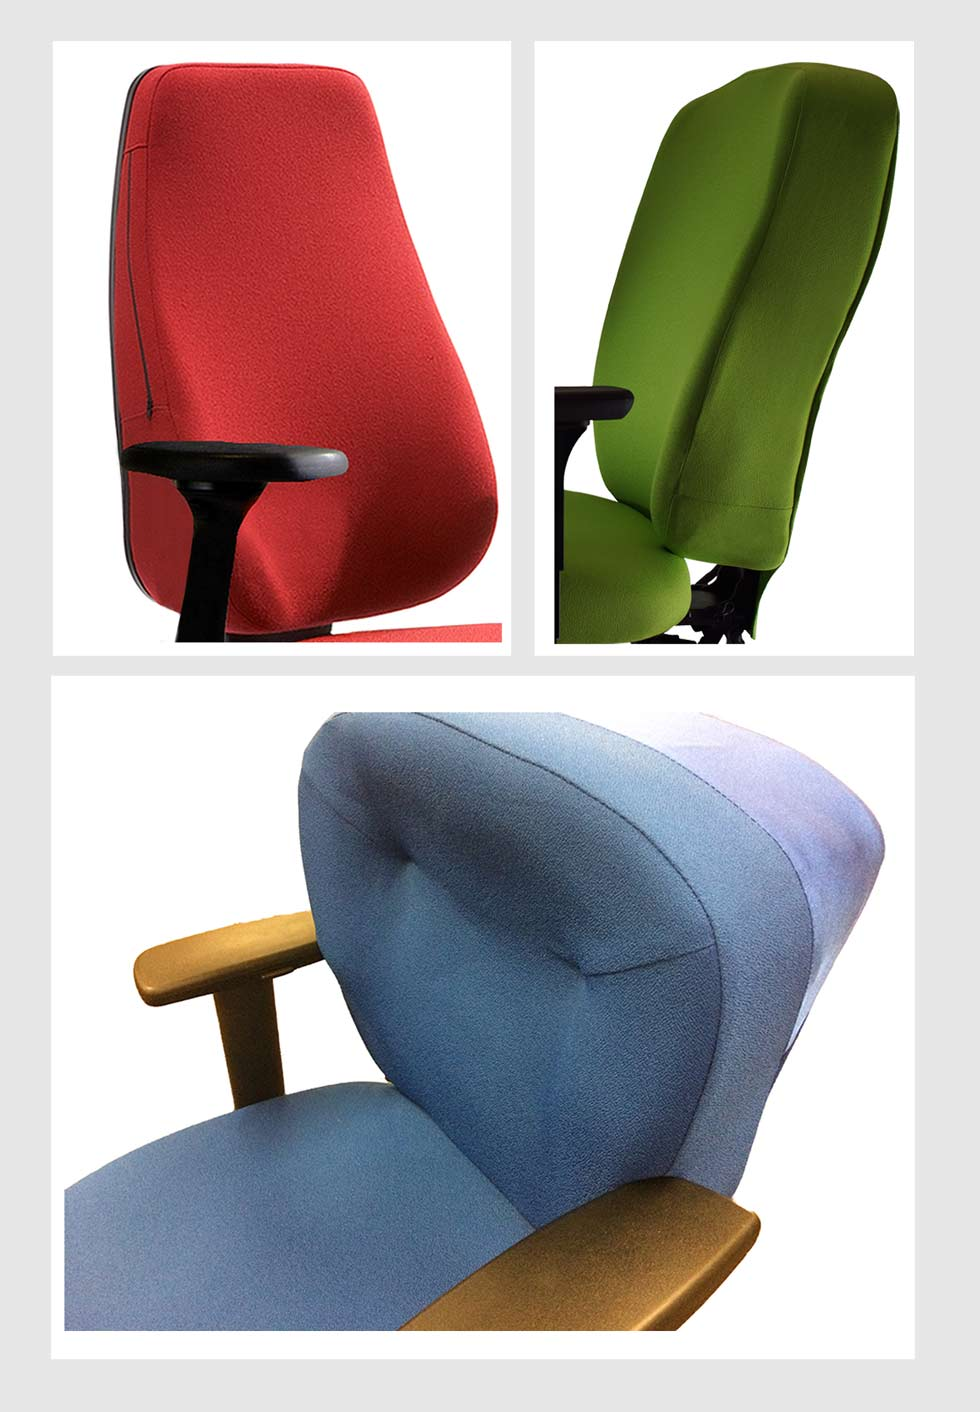 a montage of images showing Sitability's bespoke Confor-Fit upholstery on three different chair designs